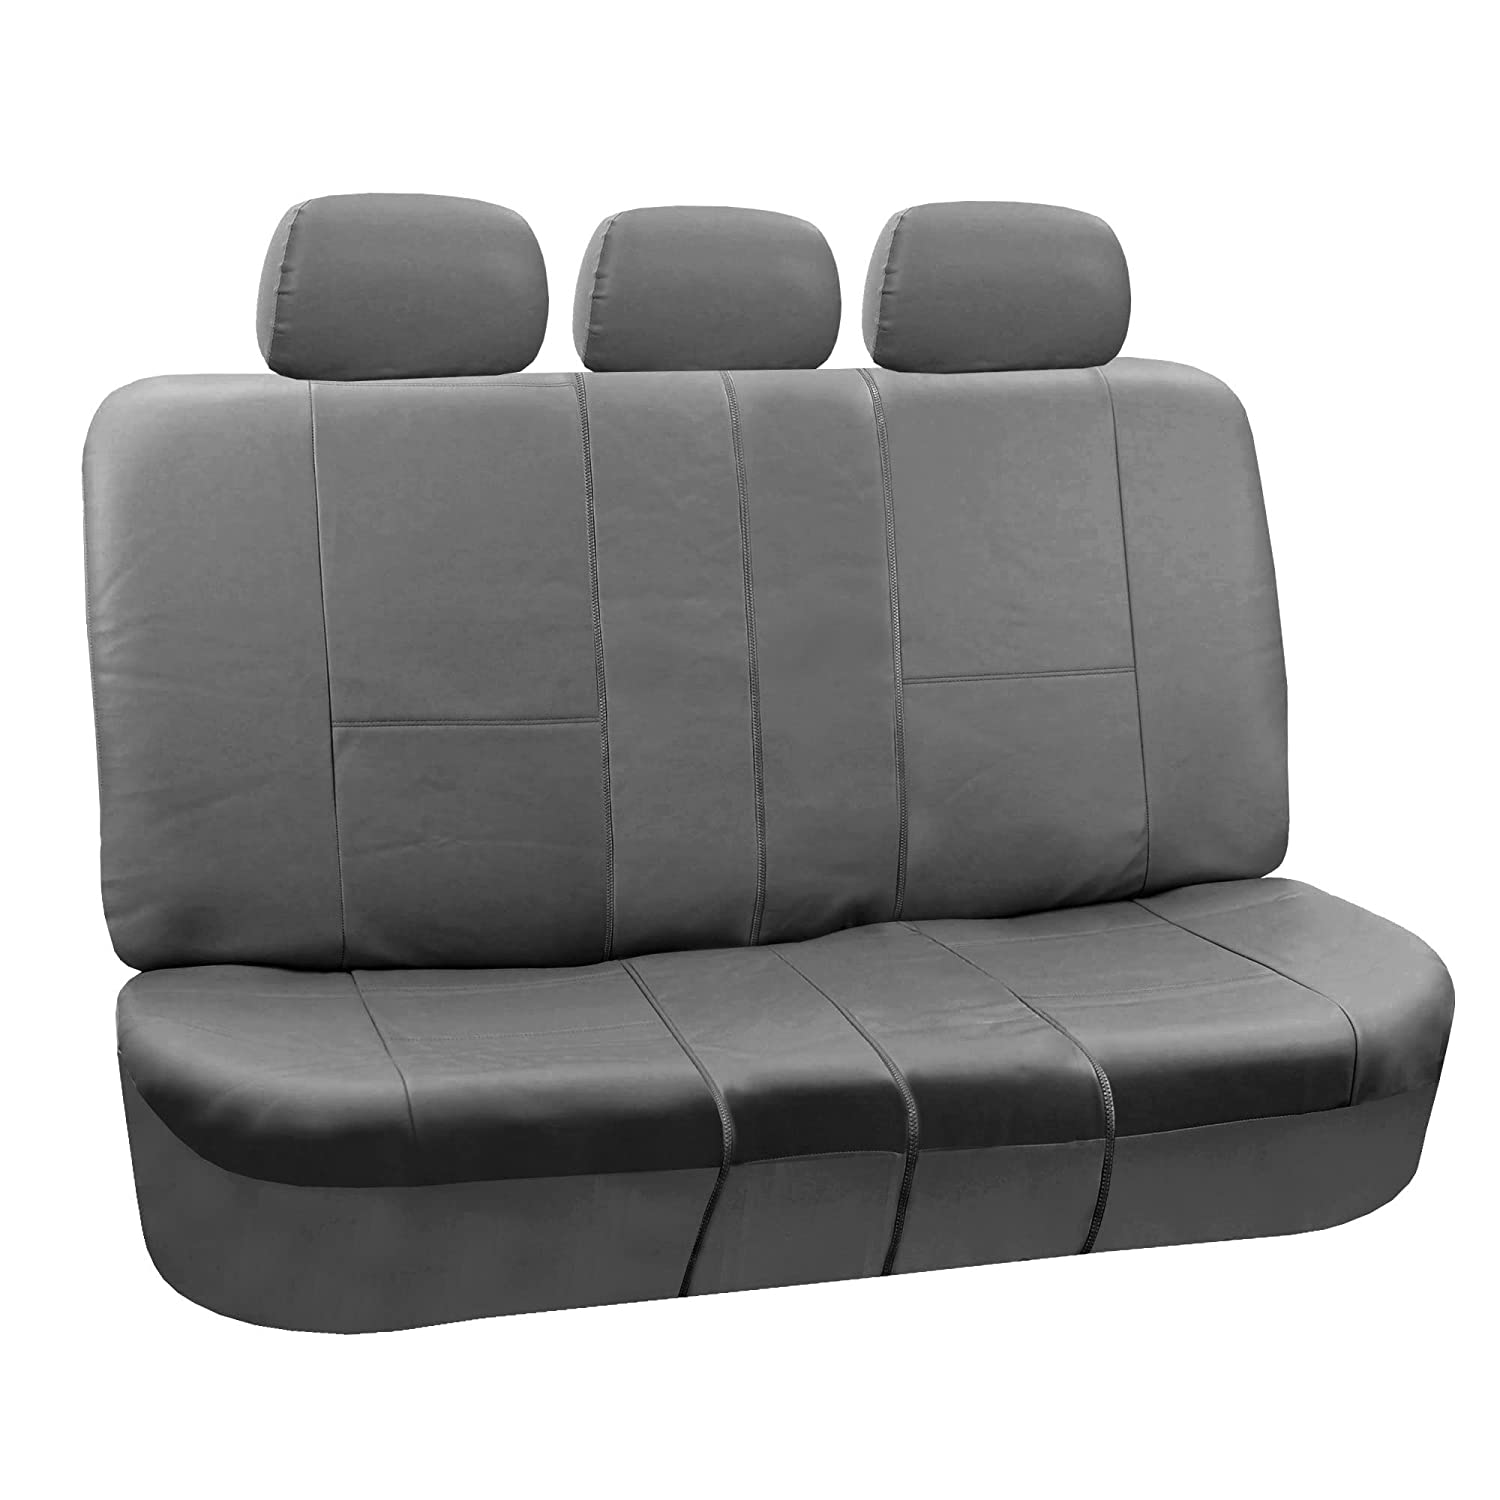 2002 ford ranger seat covers ebay autos post. Black Bedroom Furniture Sets. Home Design Ideas